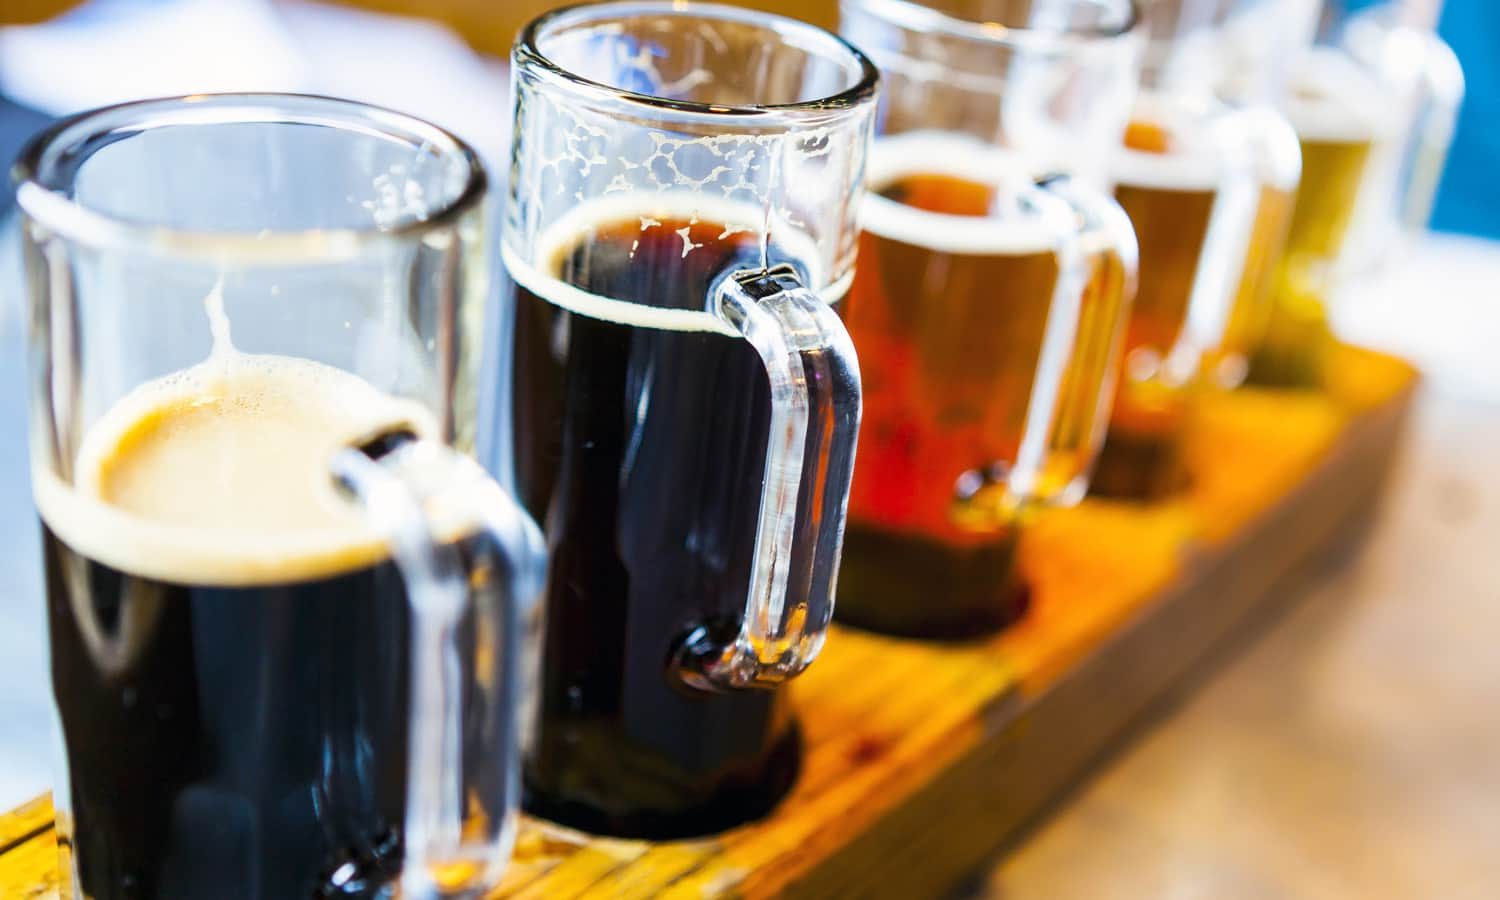 The beer industry is changing with the rise of gluten-free breweries around the world